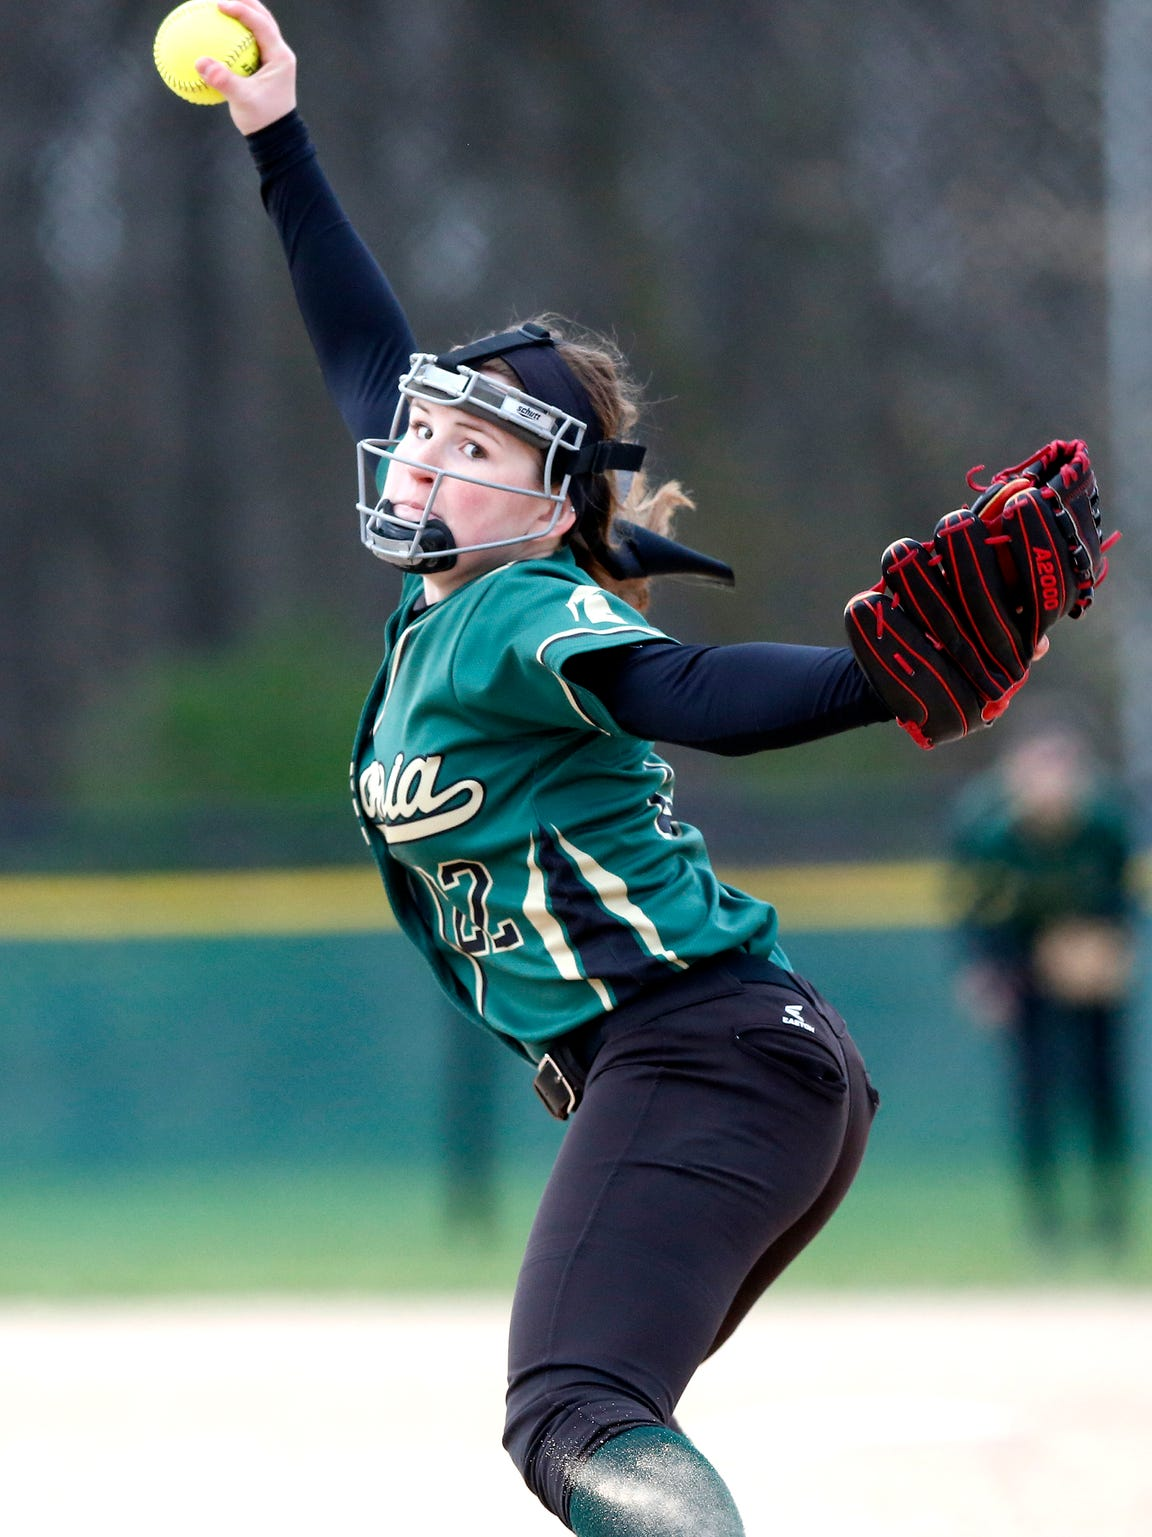 Laconia's Kayla Schwebke fires a pitch in Tuesday's